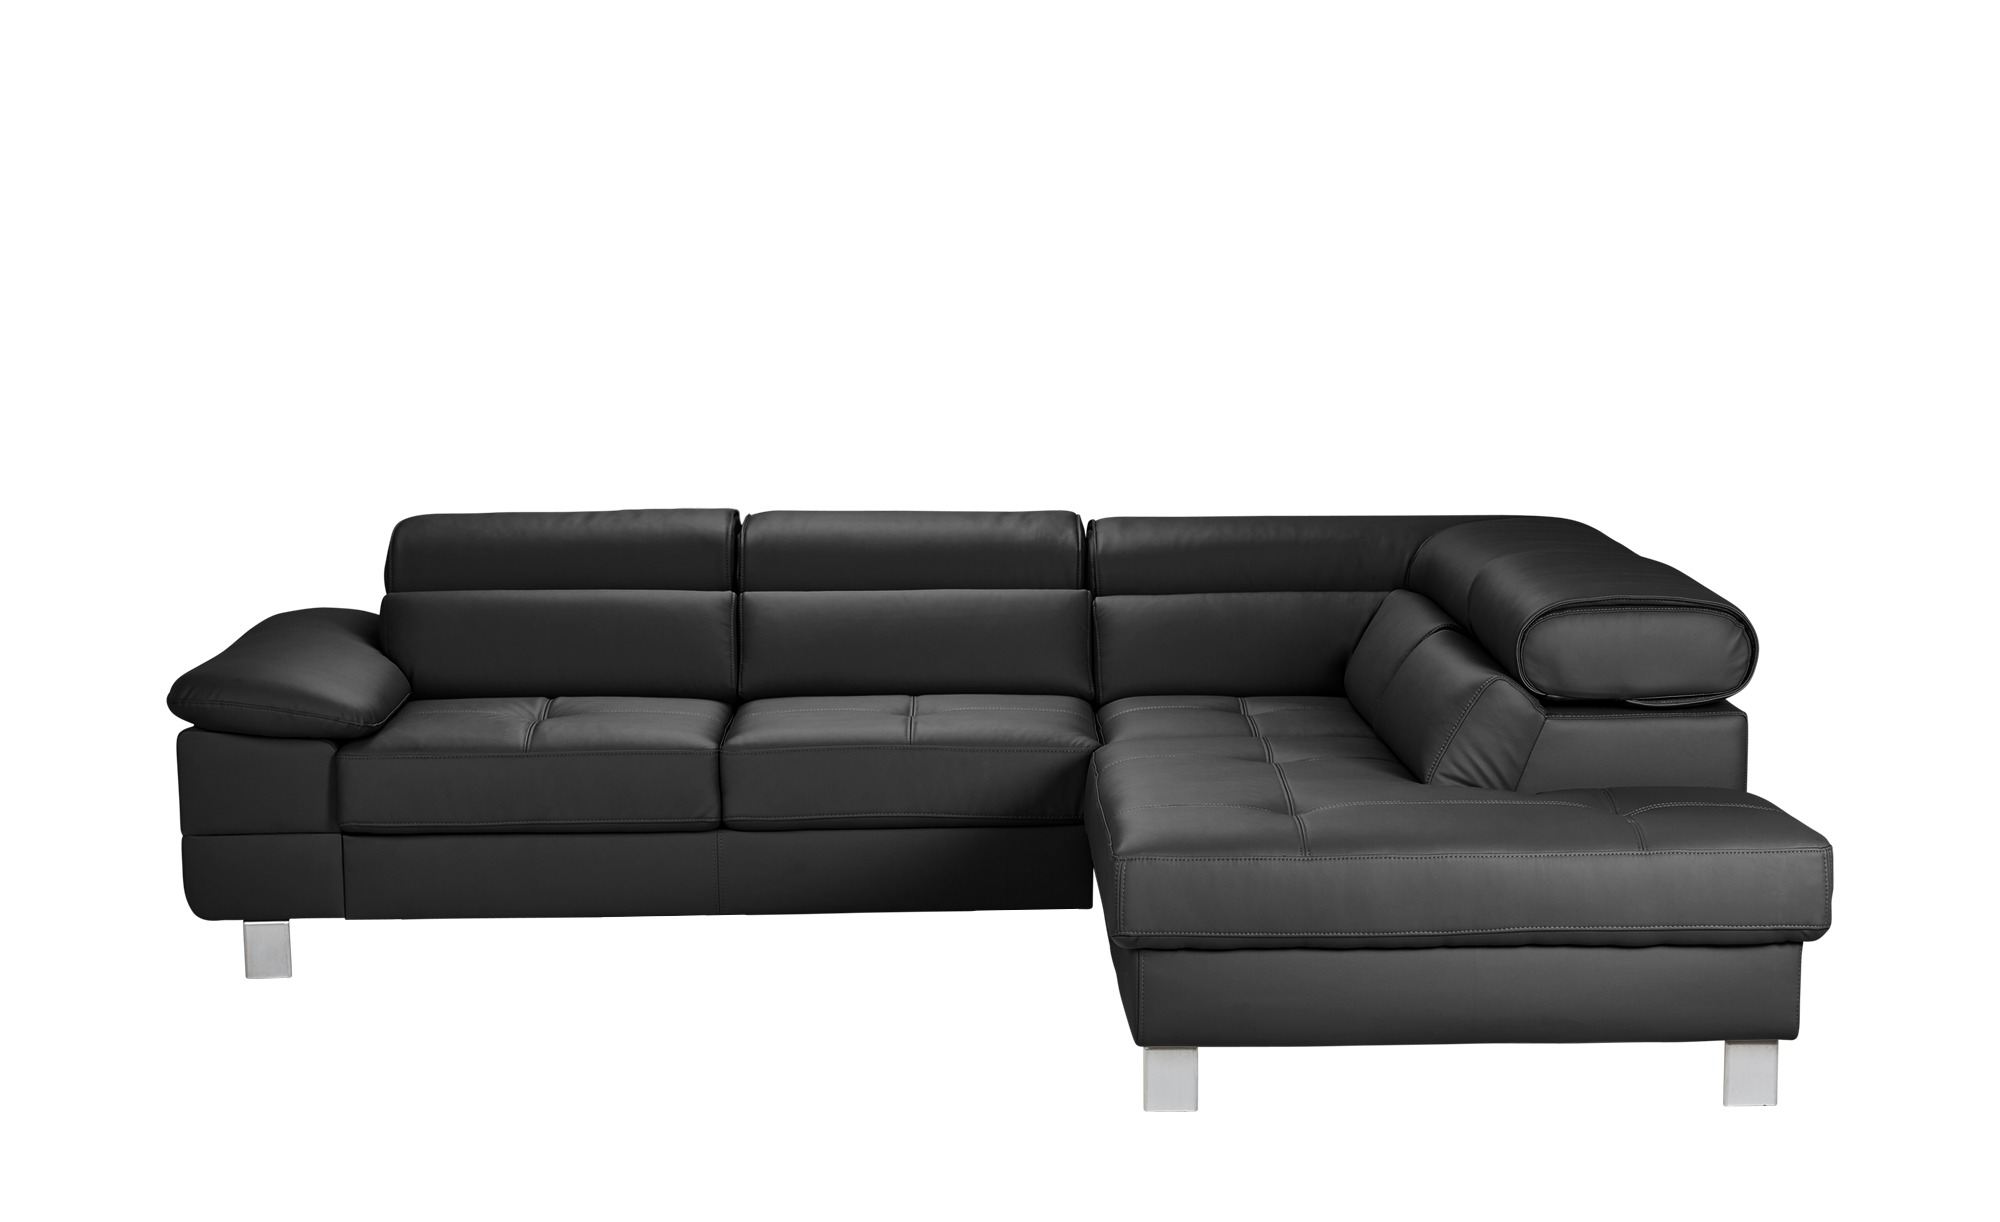 Cnouch Ecksofa Pin By Ladendirekt On Sofas Couches Sofa Furniture Sofa